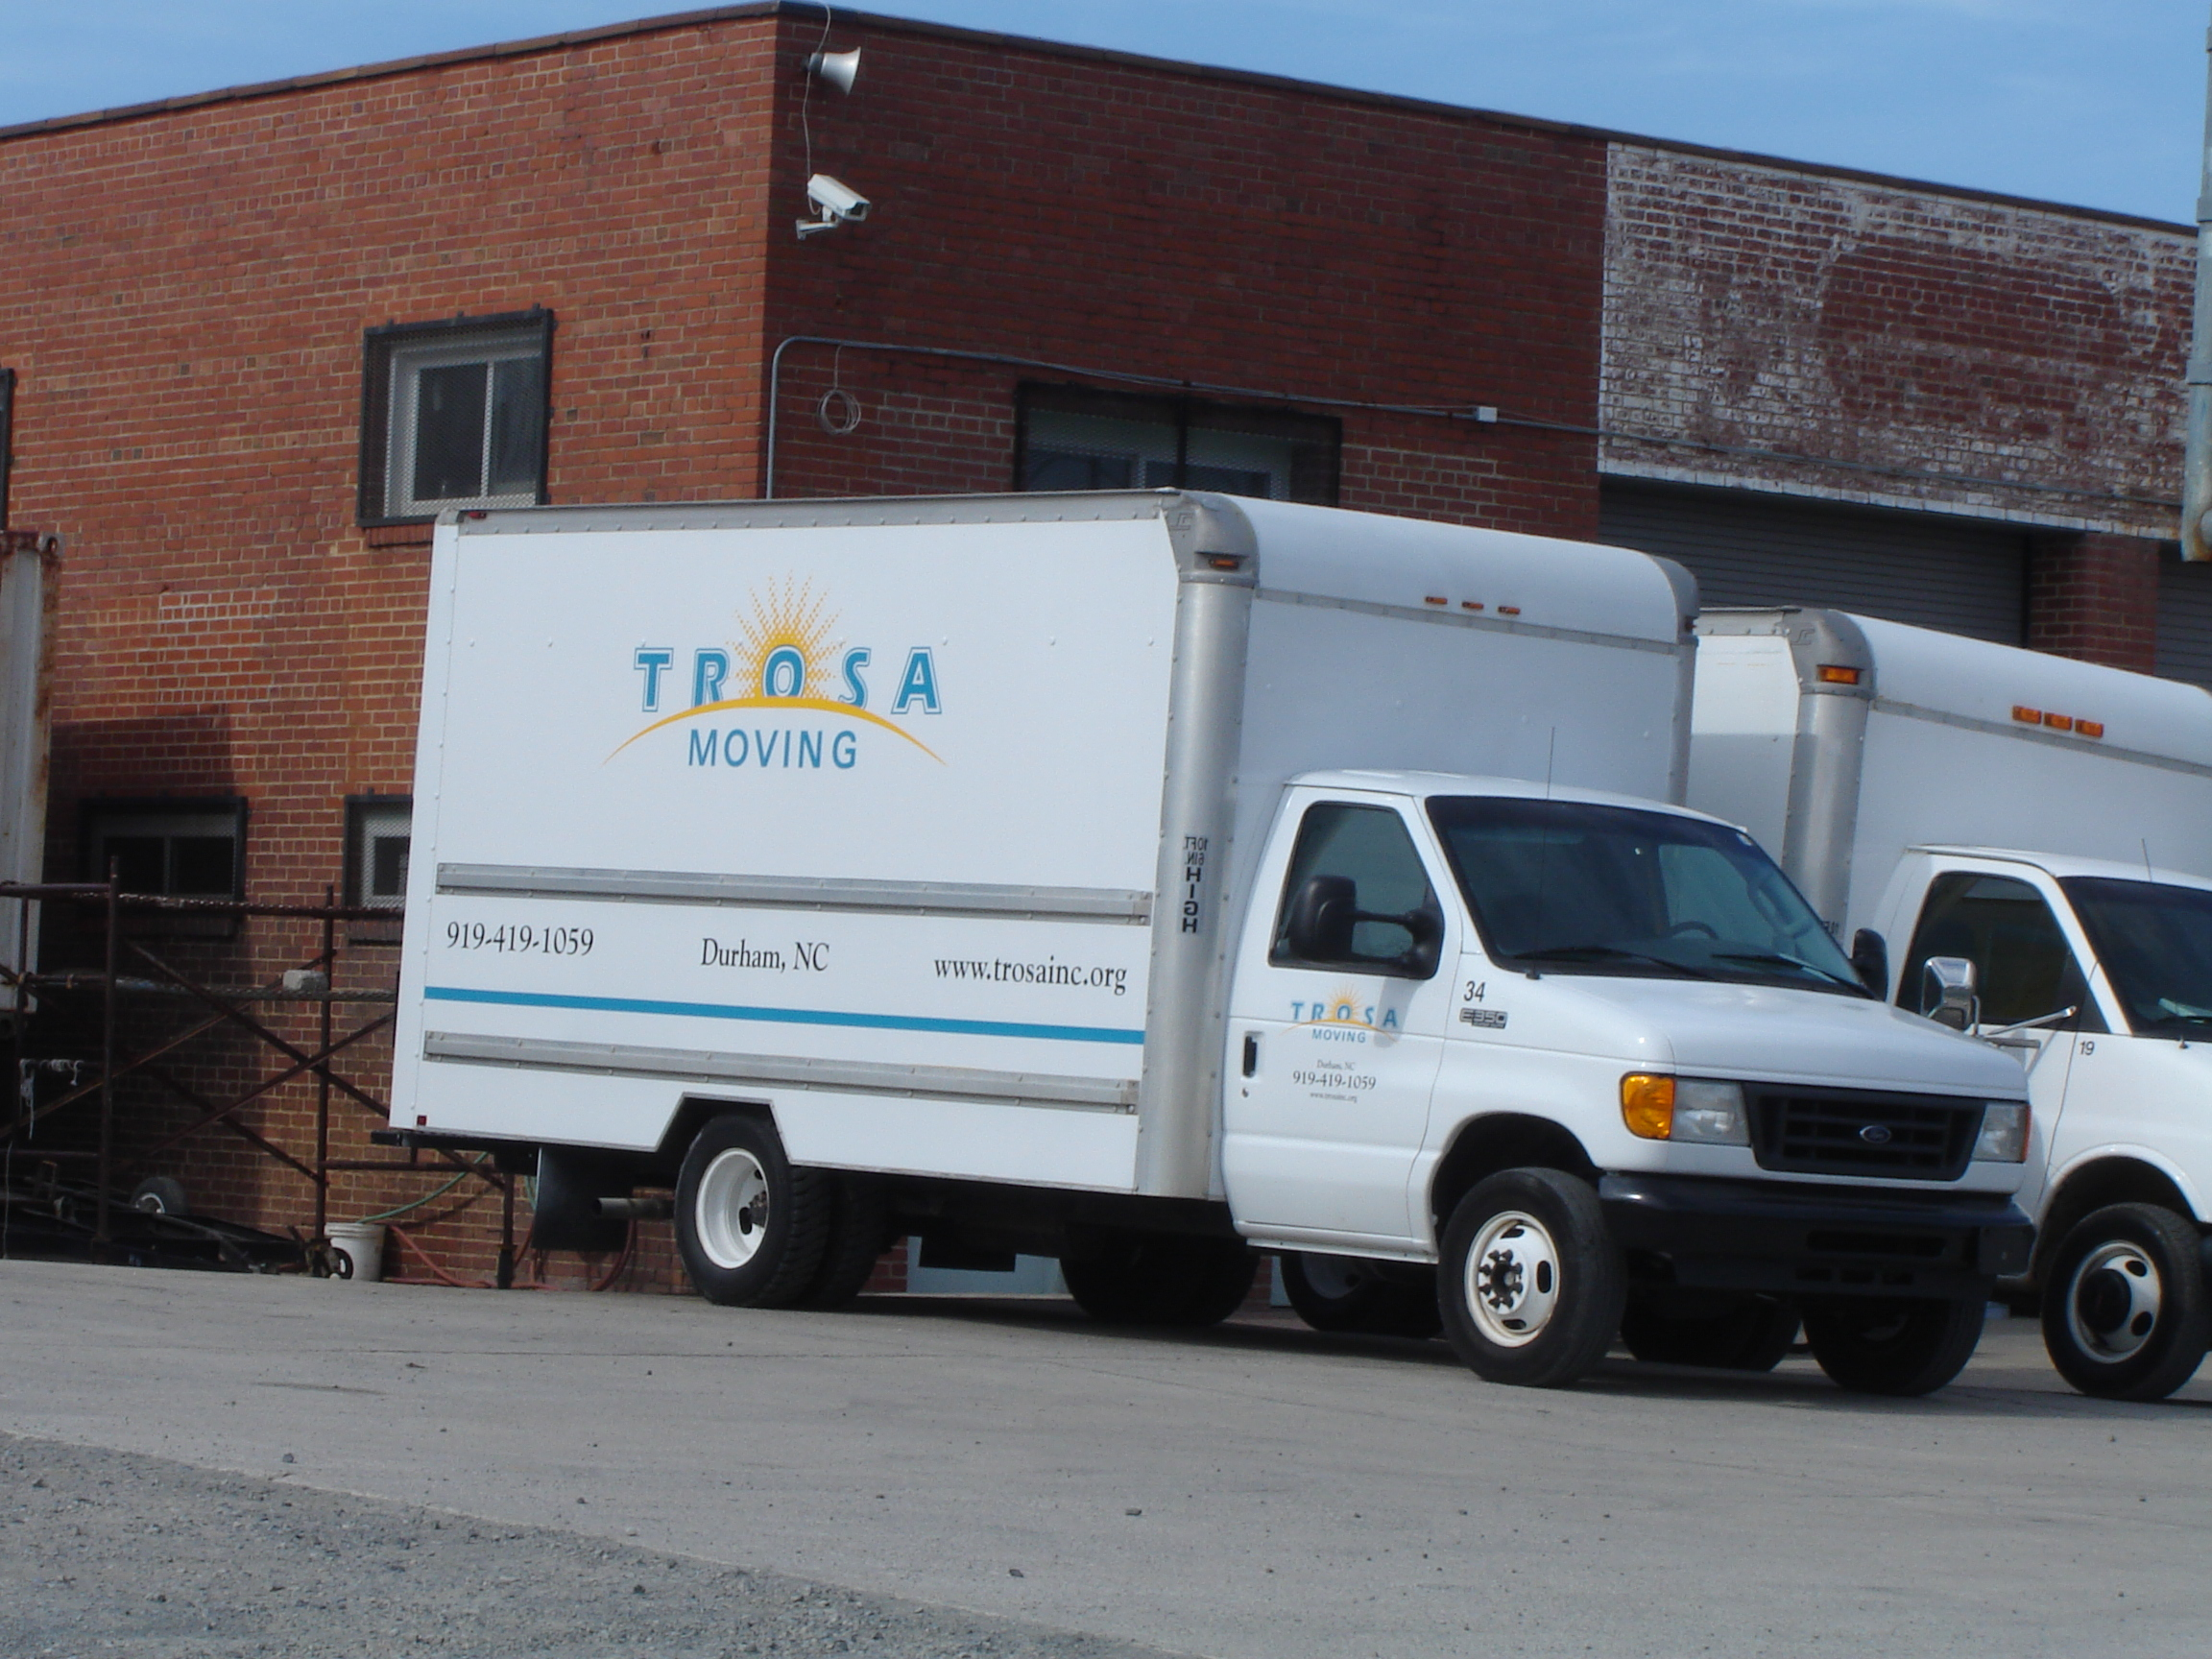 durham: TROSA - MOVING WITH CONFIDENCE